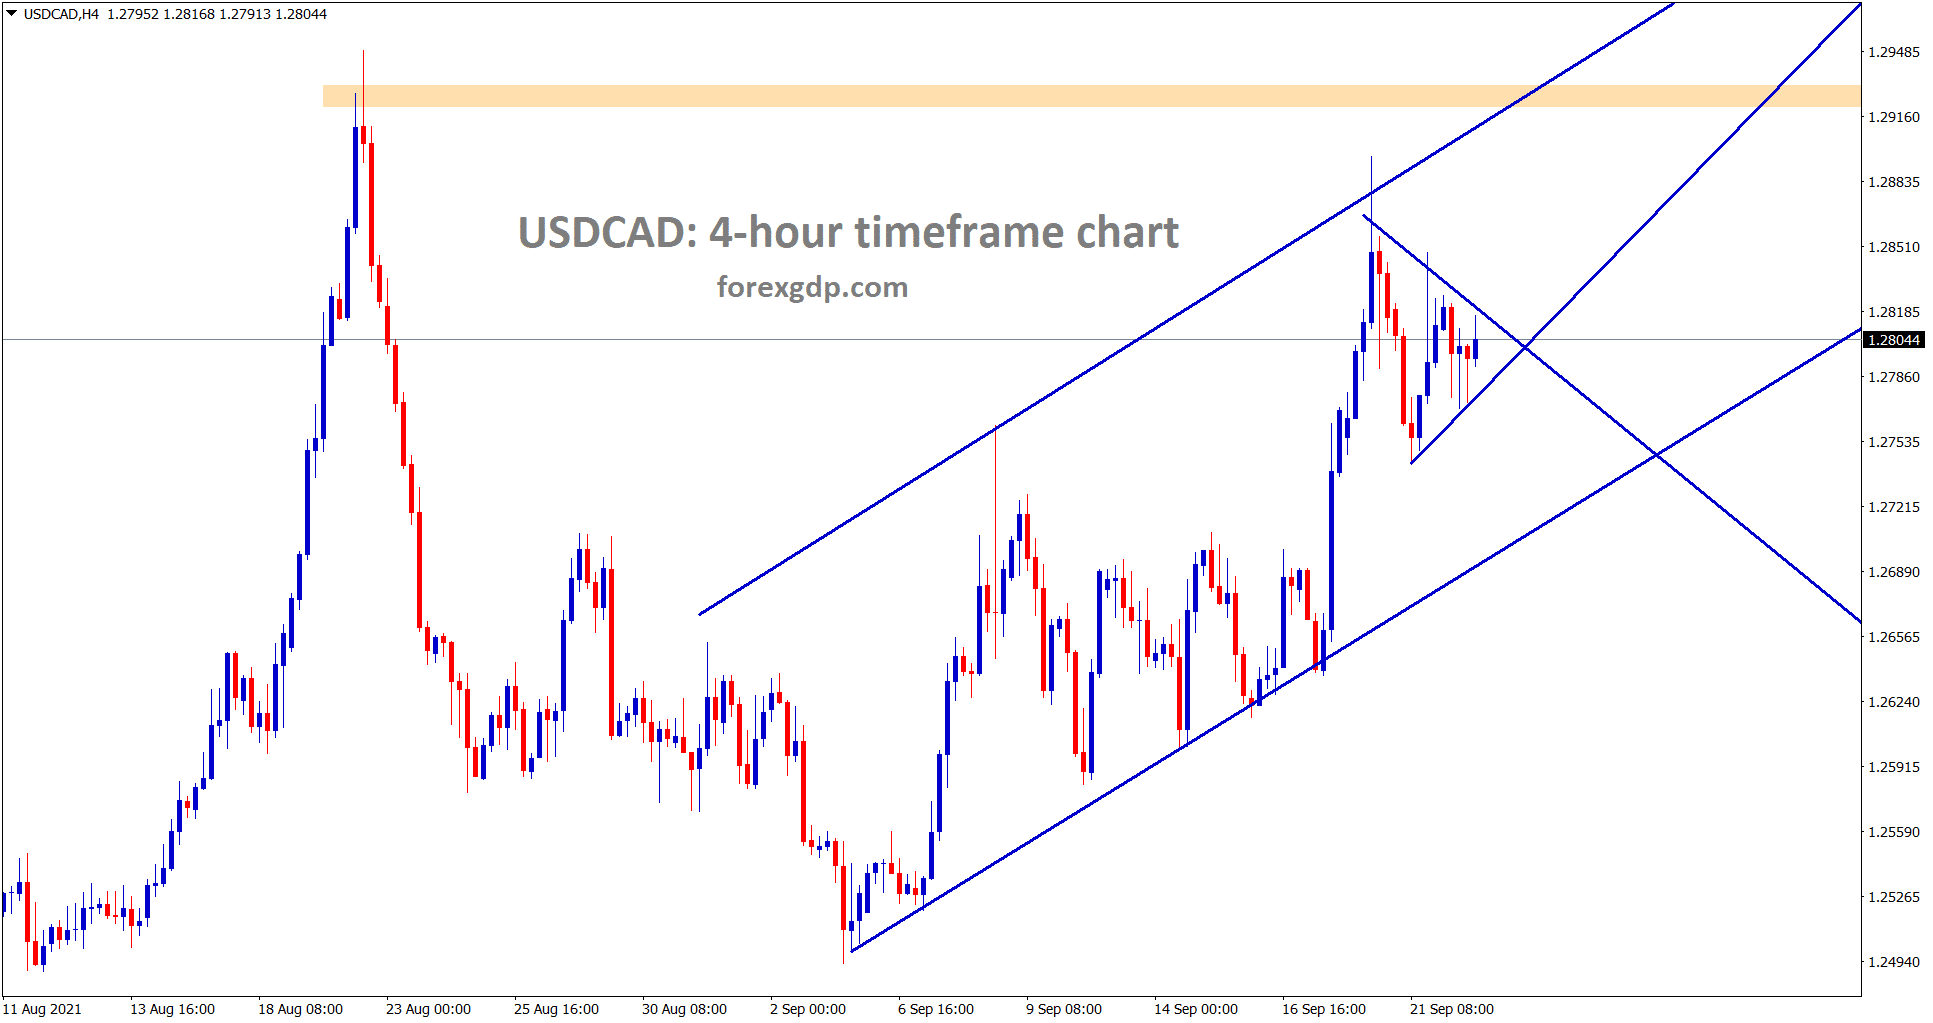 USDCAD is moving in an uptrend and recently formed a small symmetrical triangle wait for breakout